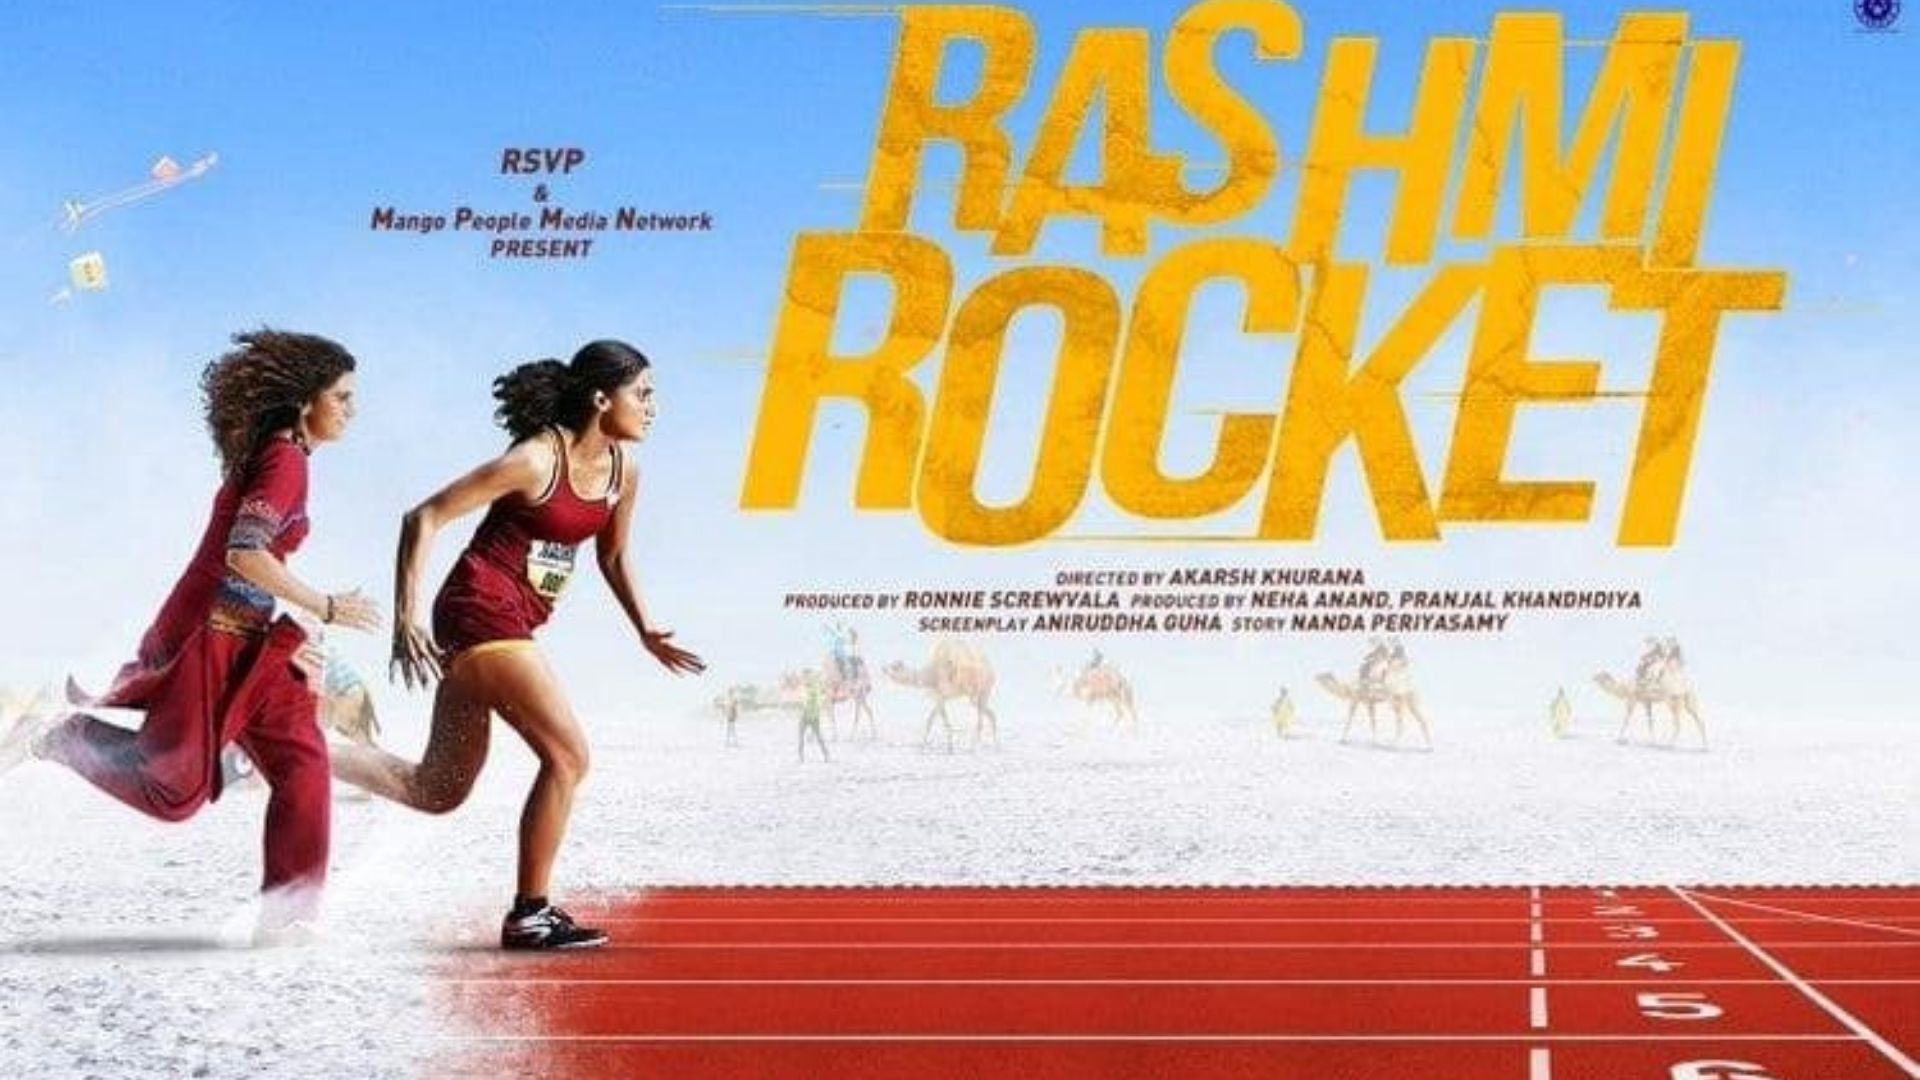 Rashmi Rocket Movie REVIEW: Taapsee Pannu's Rocket Takes A Flying Start And The Trajectory Is Perfect